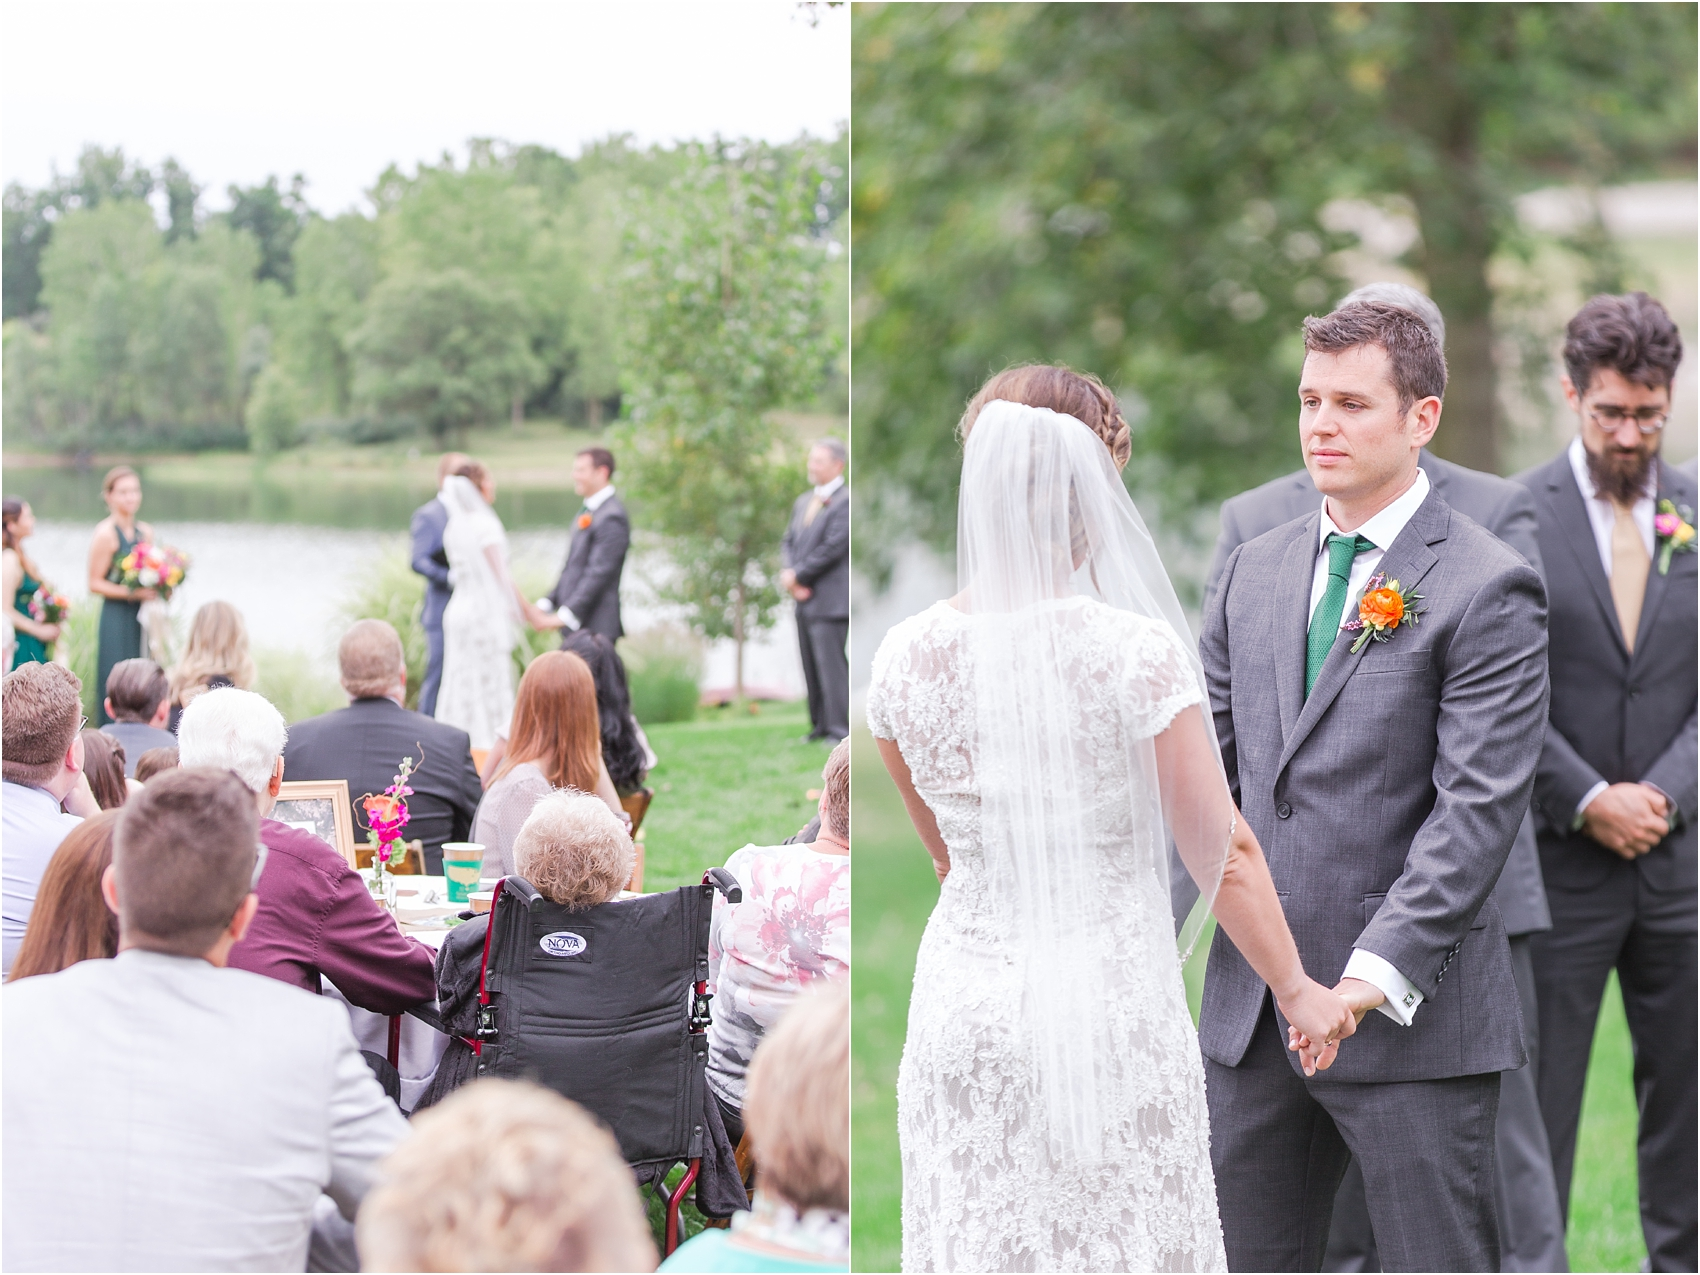 romantic-intimate-backyard-wedding-photos-at-private-estate-in-ann-arbor-mi-by-courtney-carolyn-photography_0100.jpg